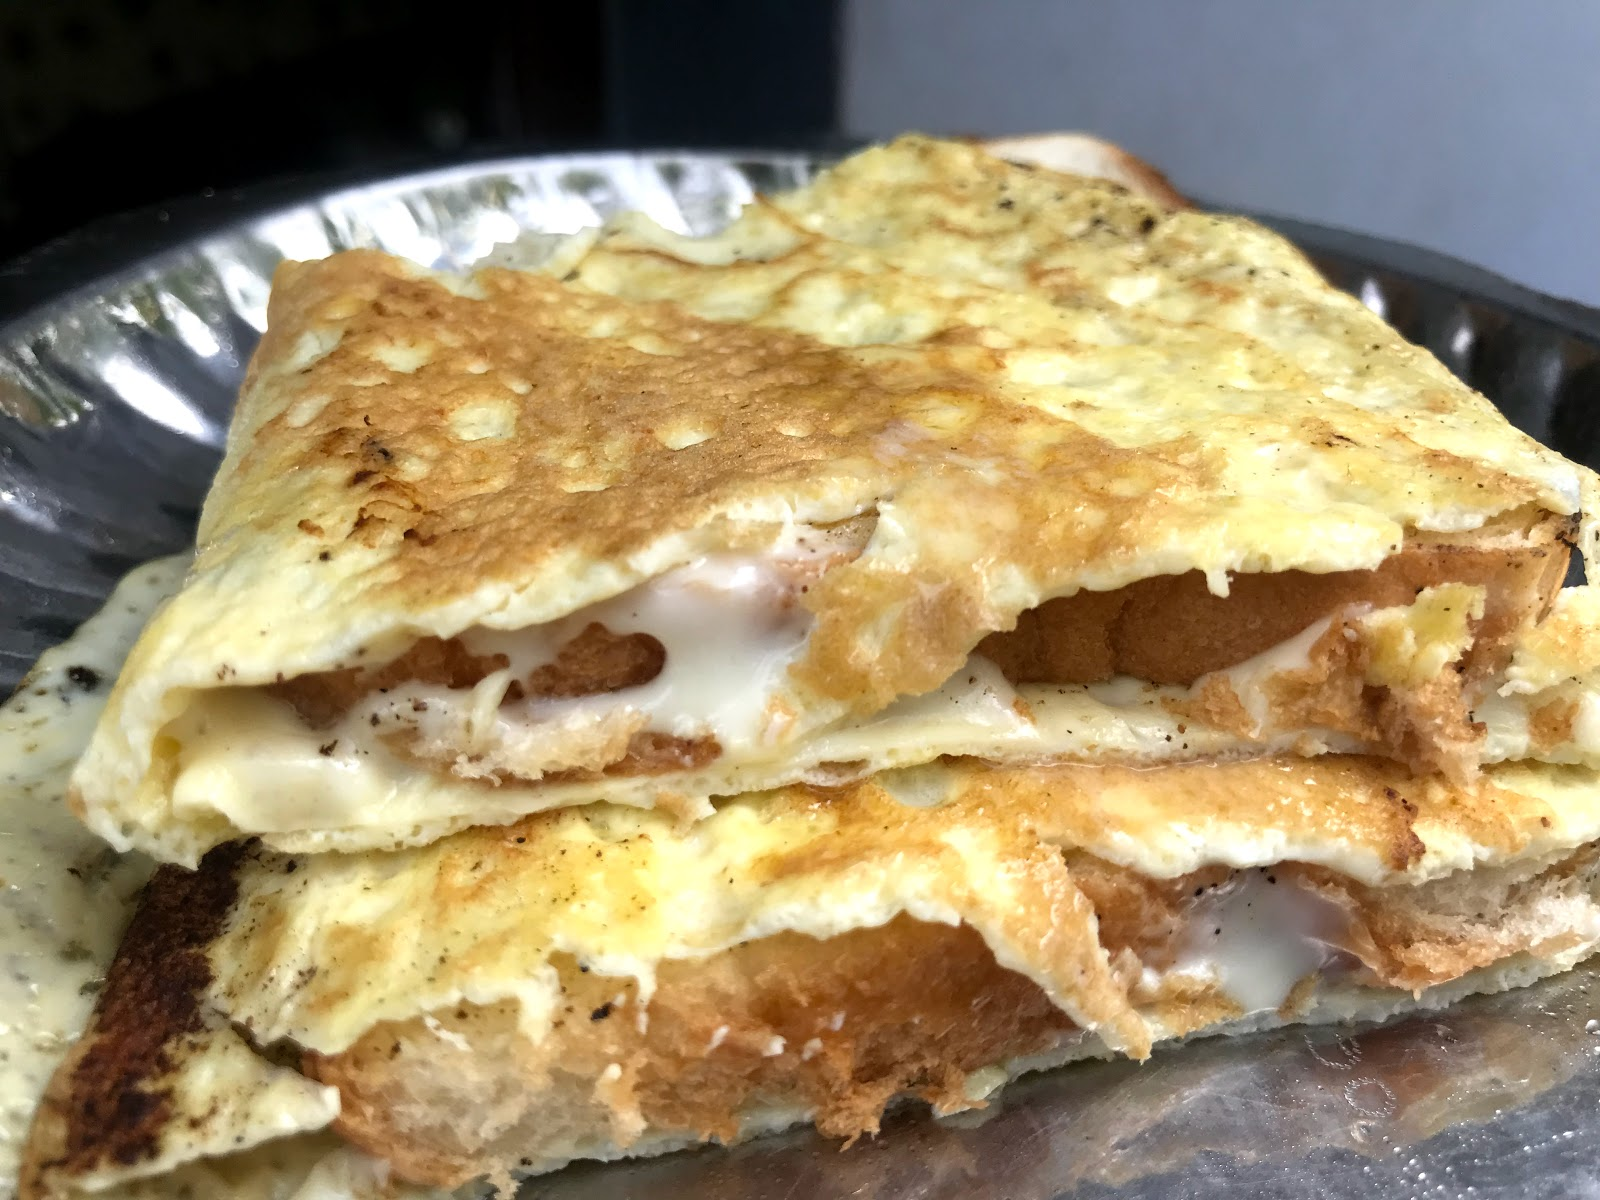 https://www.shobiskitchen.com/2019/08/cheesy-bread-omlette.html